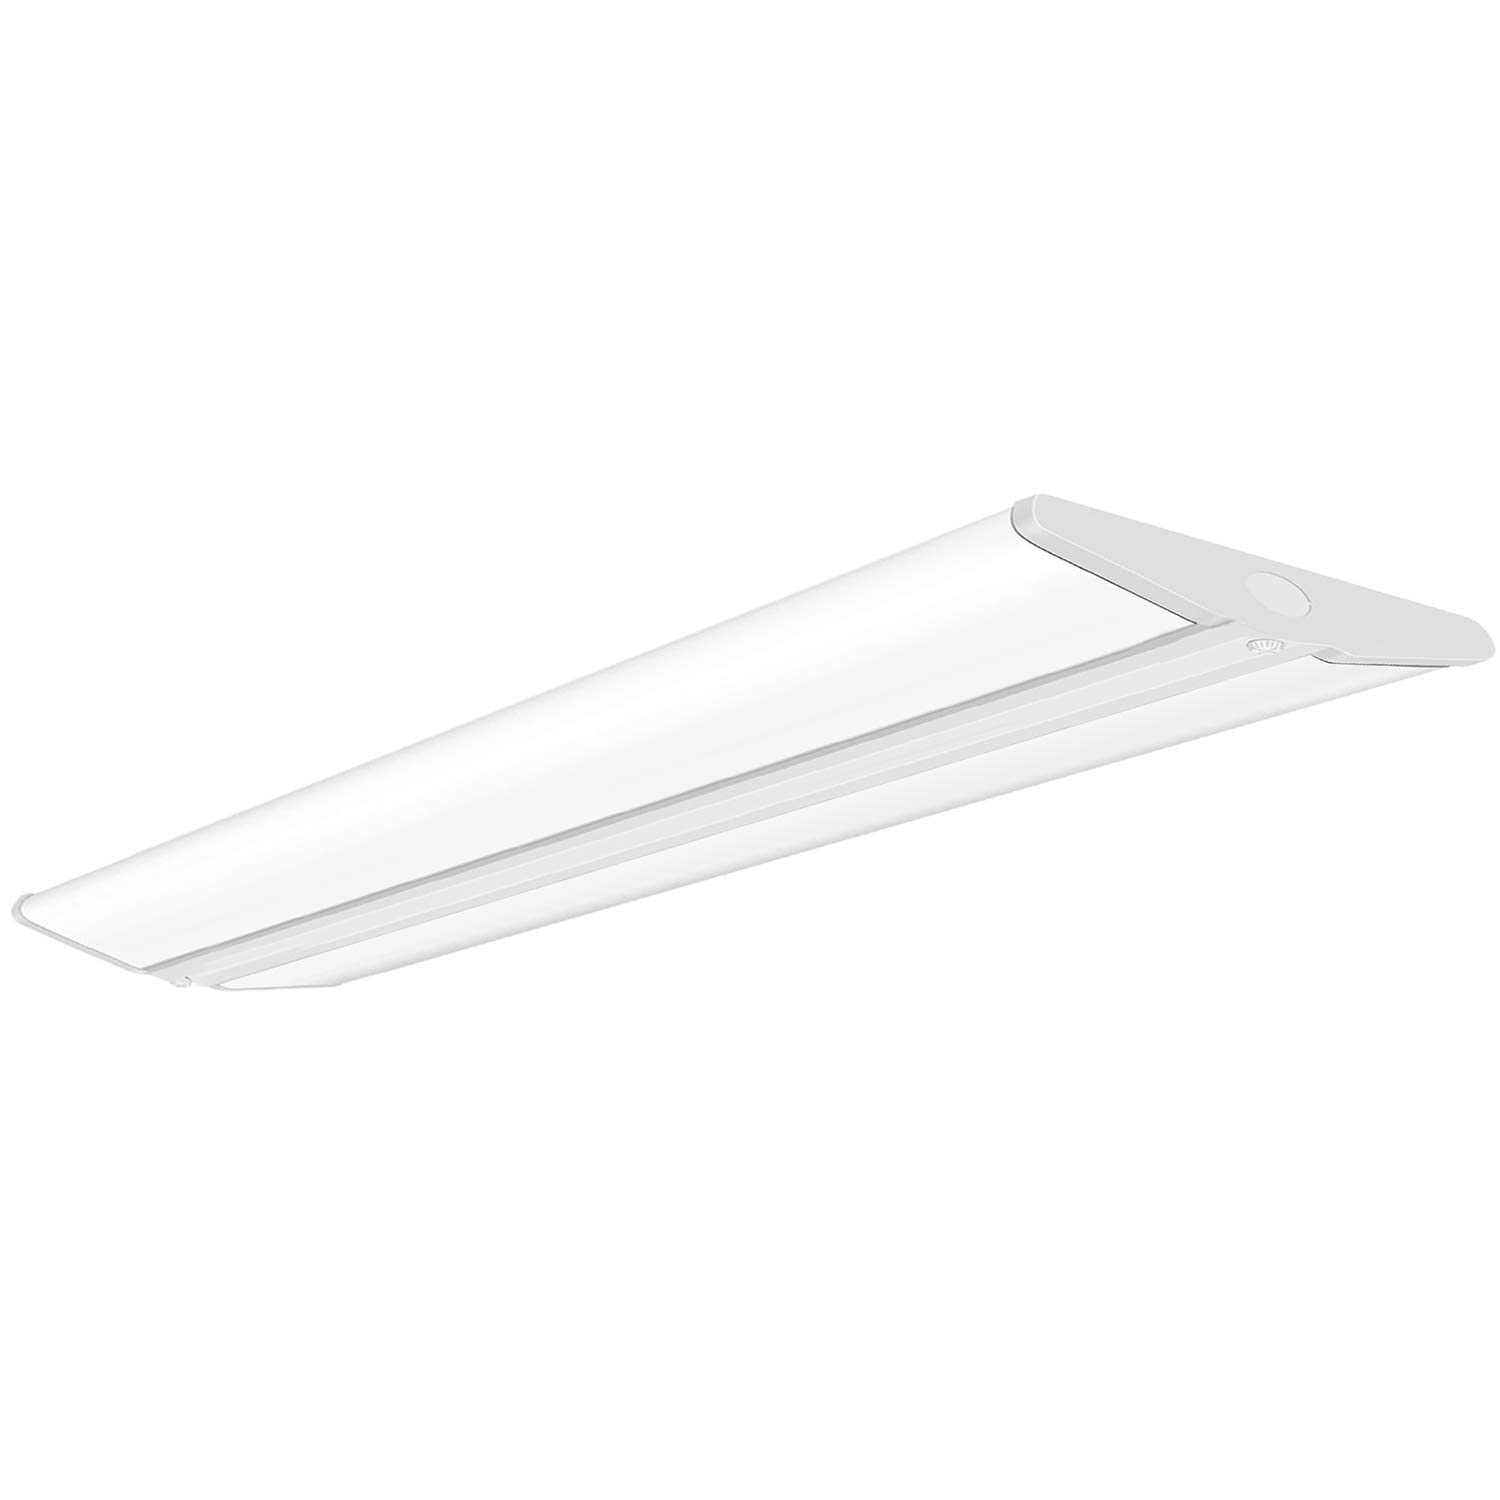 AntLux 72W 4FT LED Wraparound Office Light, Ultra Slim LED Garage Lights Flush Mount, 8000 Lumens, 4000K, No Glare, 4 Foot Wrap Shop Ceiling Lighting Fixtures, Fluorescent Tube Replacement